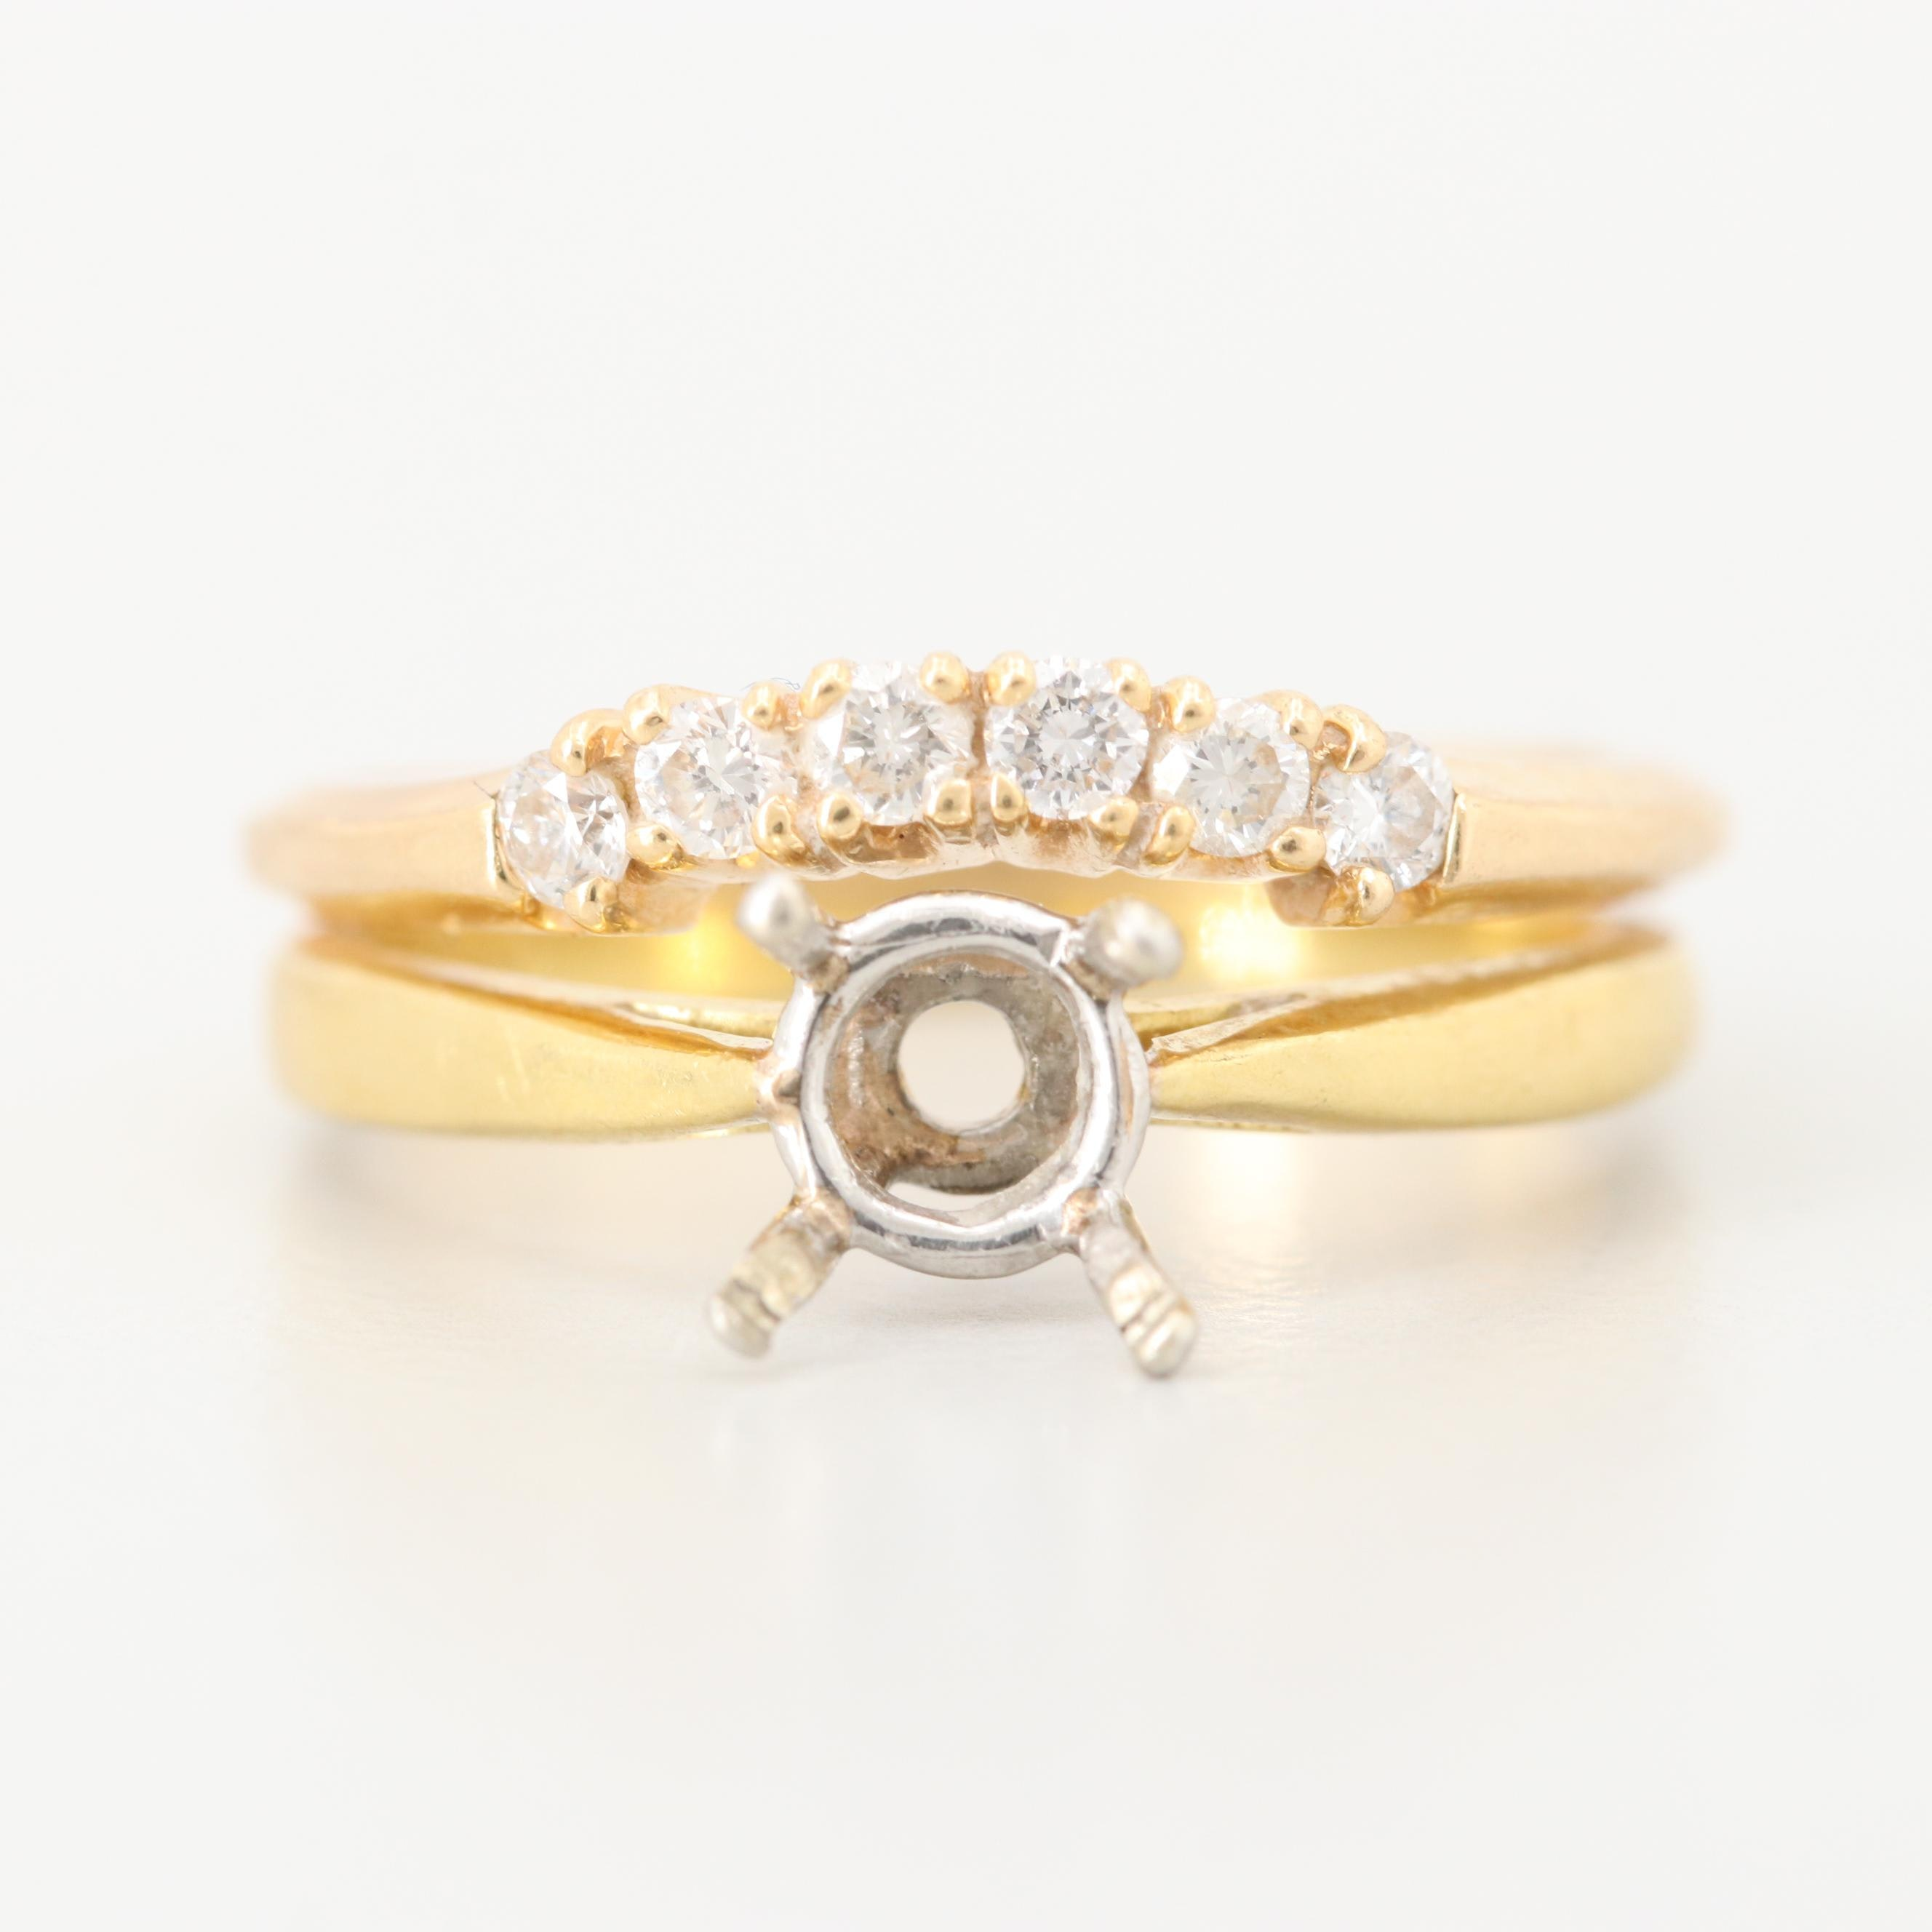 18K and 14K Yellow Gold Semi-Mount Diamond Ring with Platinum Accents